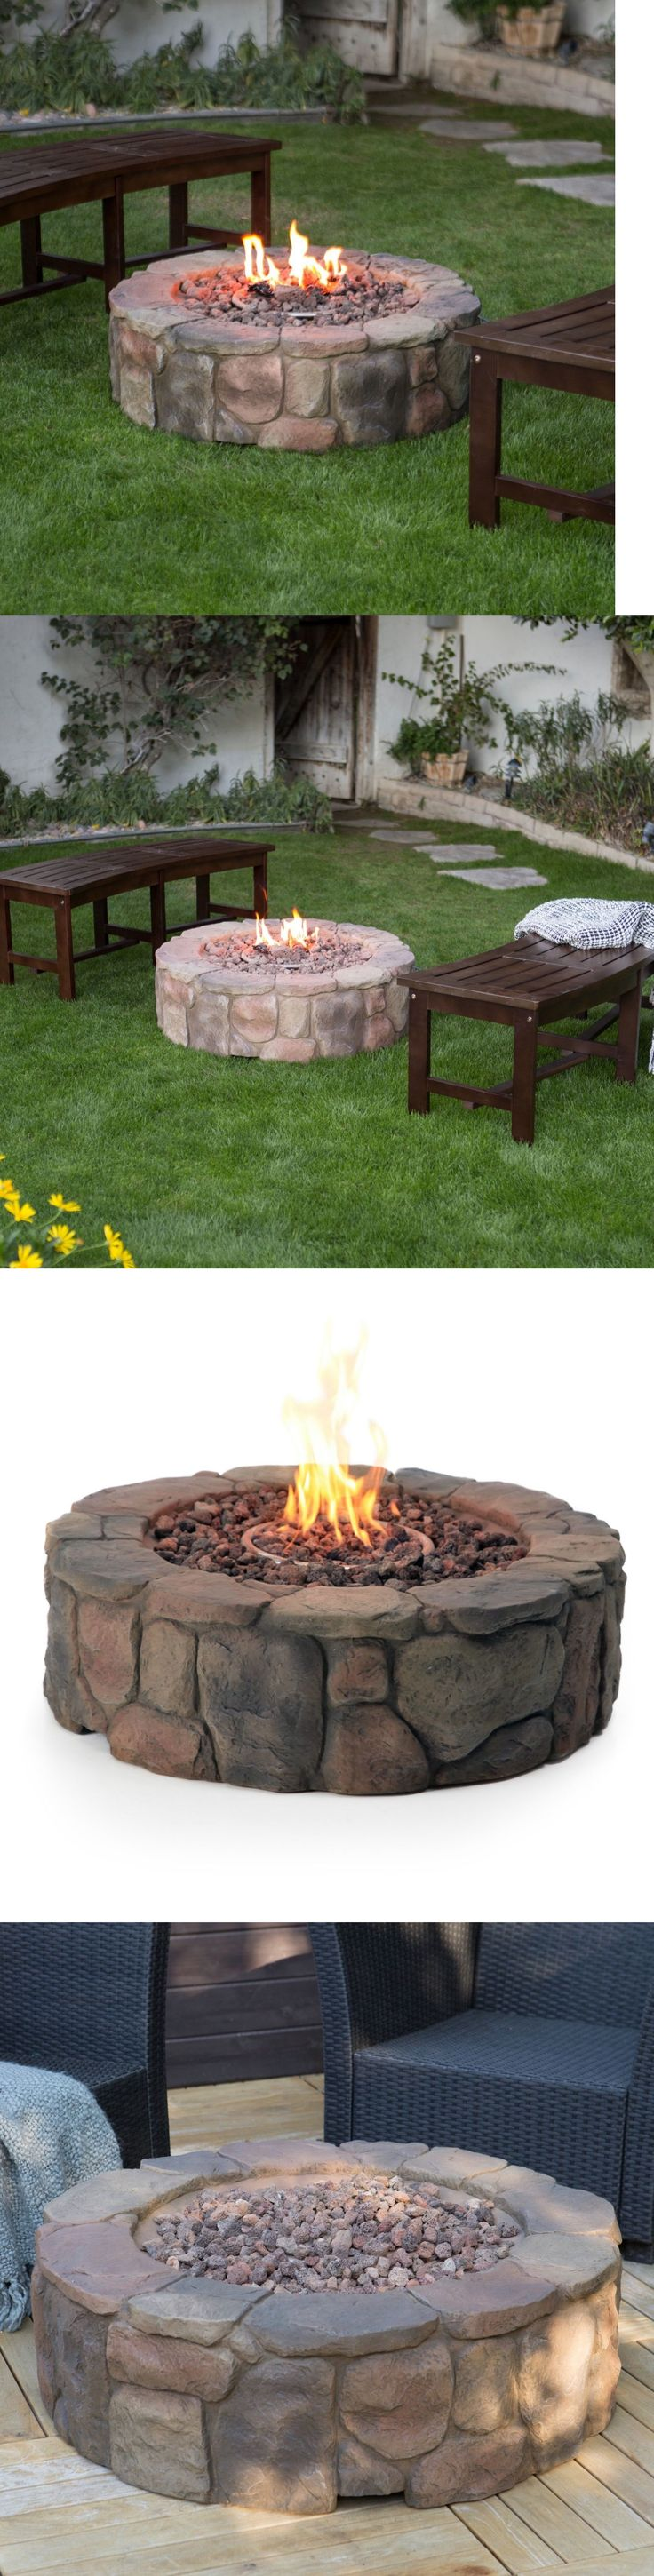 Fire Pits and Chimineas 85916: Outdoor Propane Fire Pit Backyard Patio Deck Stone Fireplace Campfire Gas Heater -> BUY IT NOW ONLY: $326.21 on eBay!